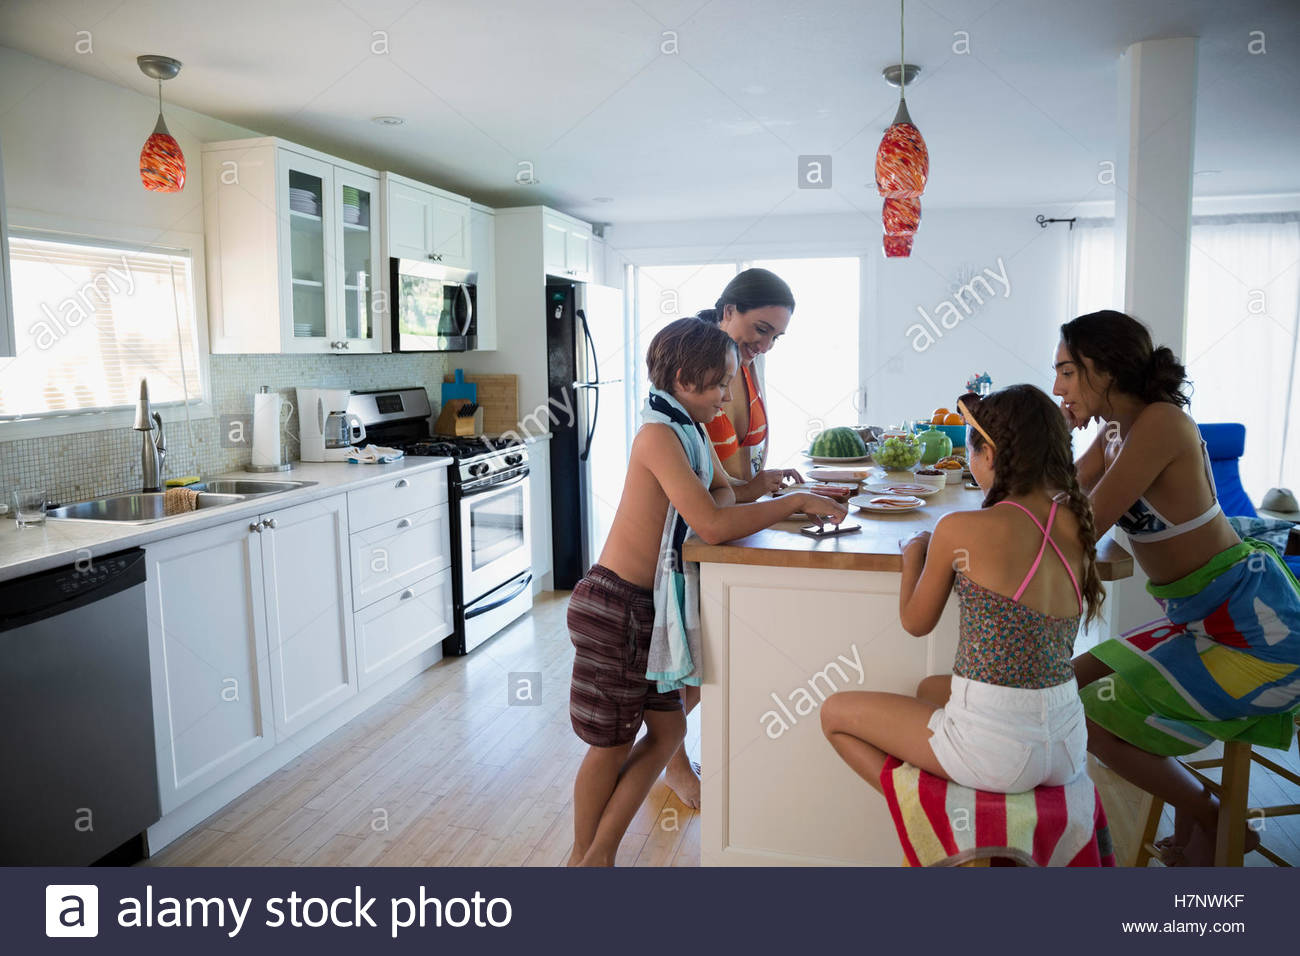 Family in bathing suits eating at kitchen island - Stock Image